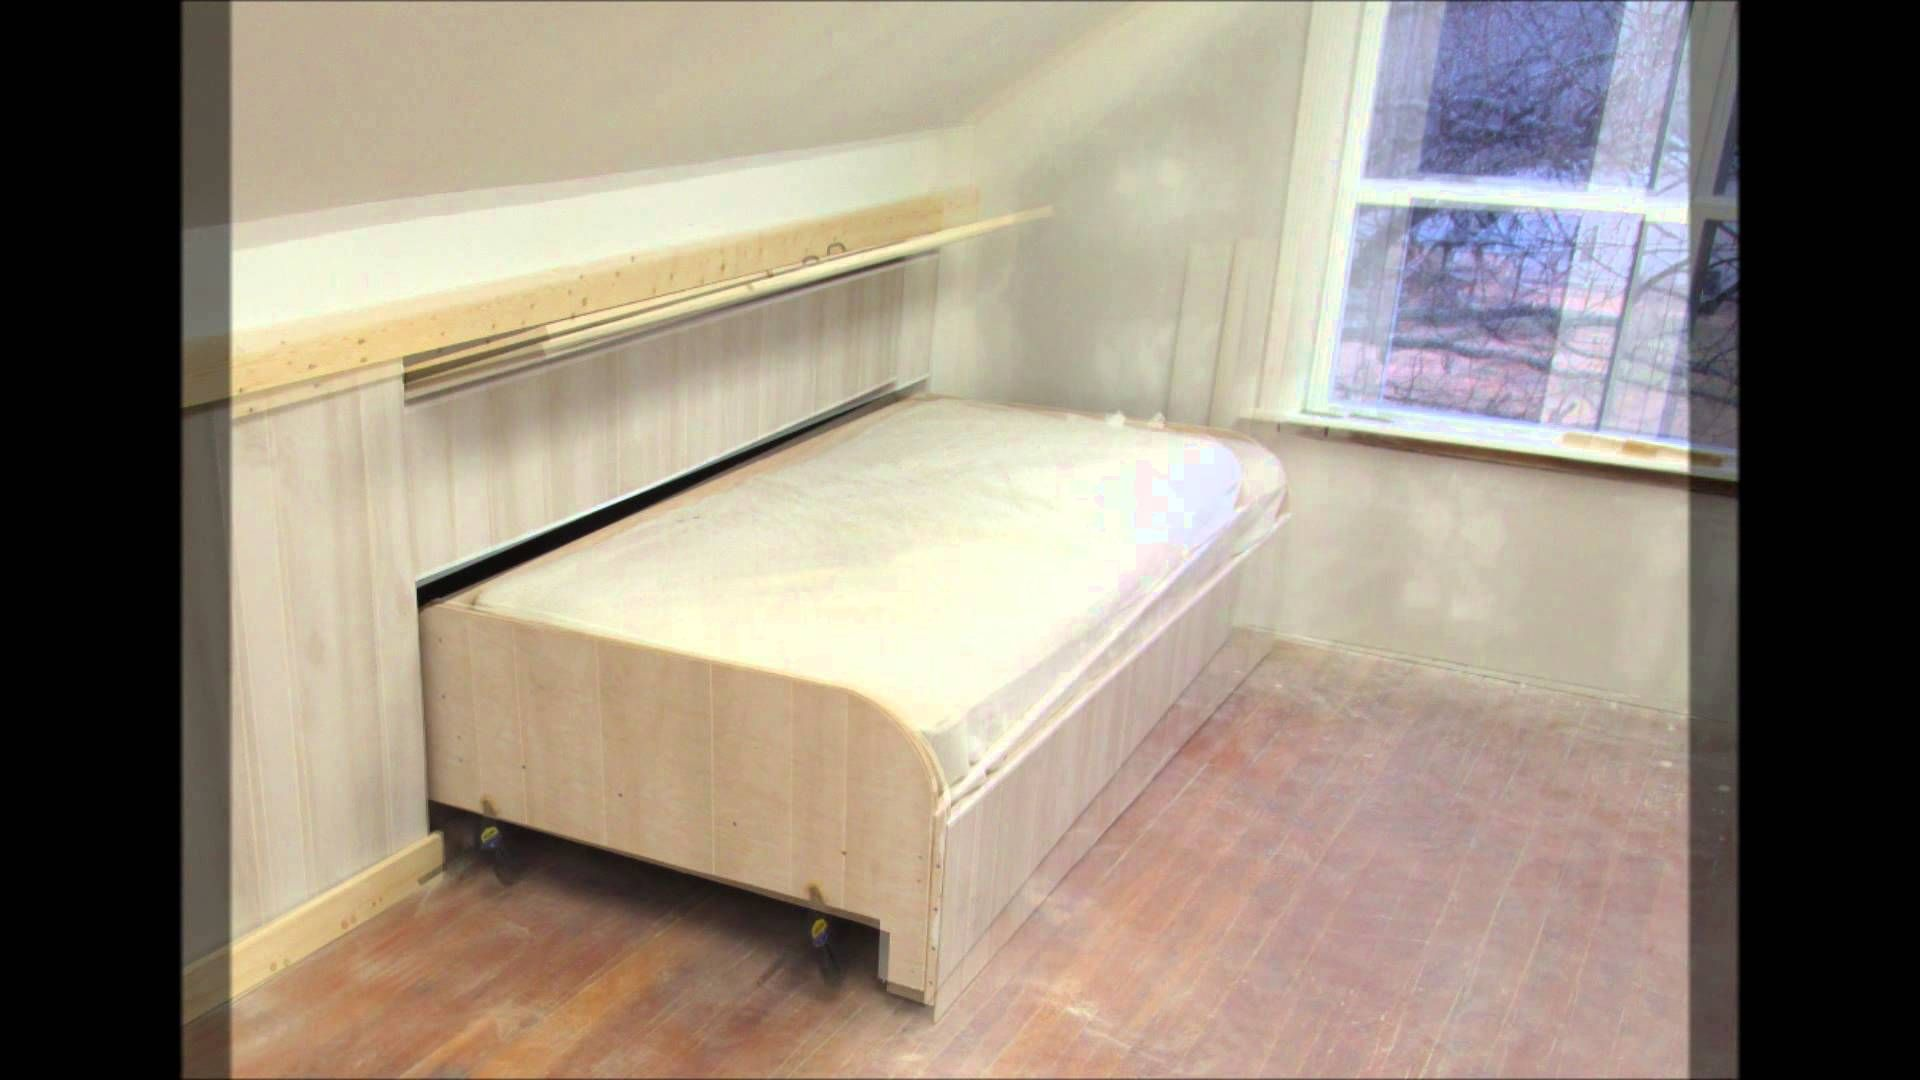 This pull out bed that tucks into the wall where the roof pitch to finish another area of the upstairs remodel i added some paneling to the end board of the hidden pull out knee wall bed amipublicfo Choice Image